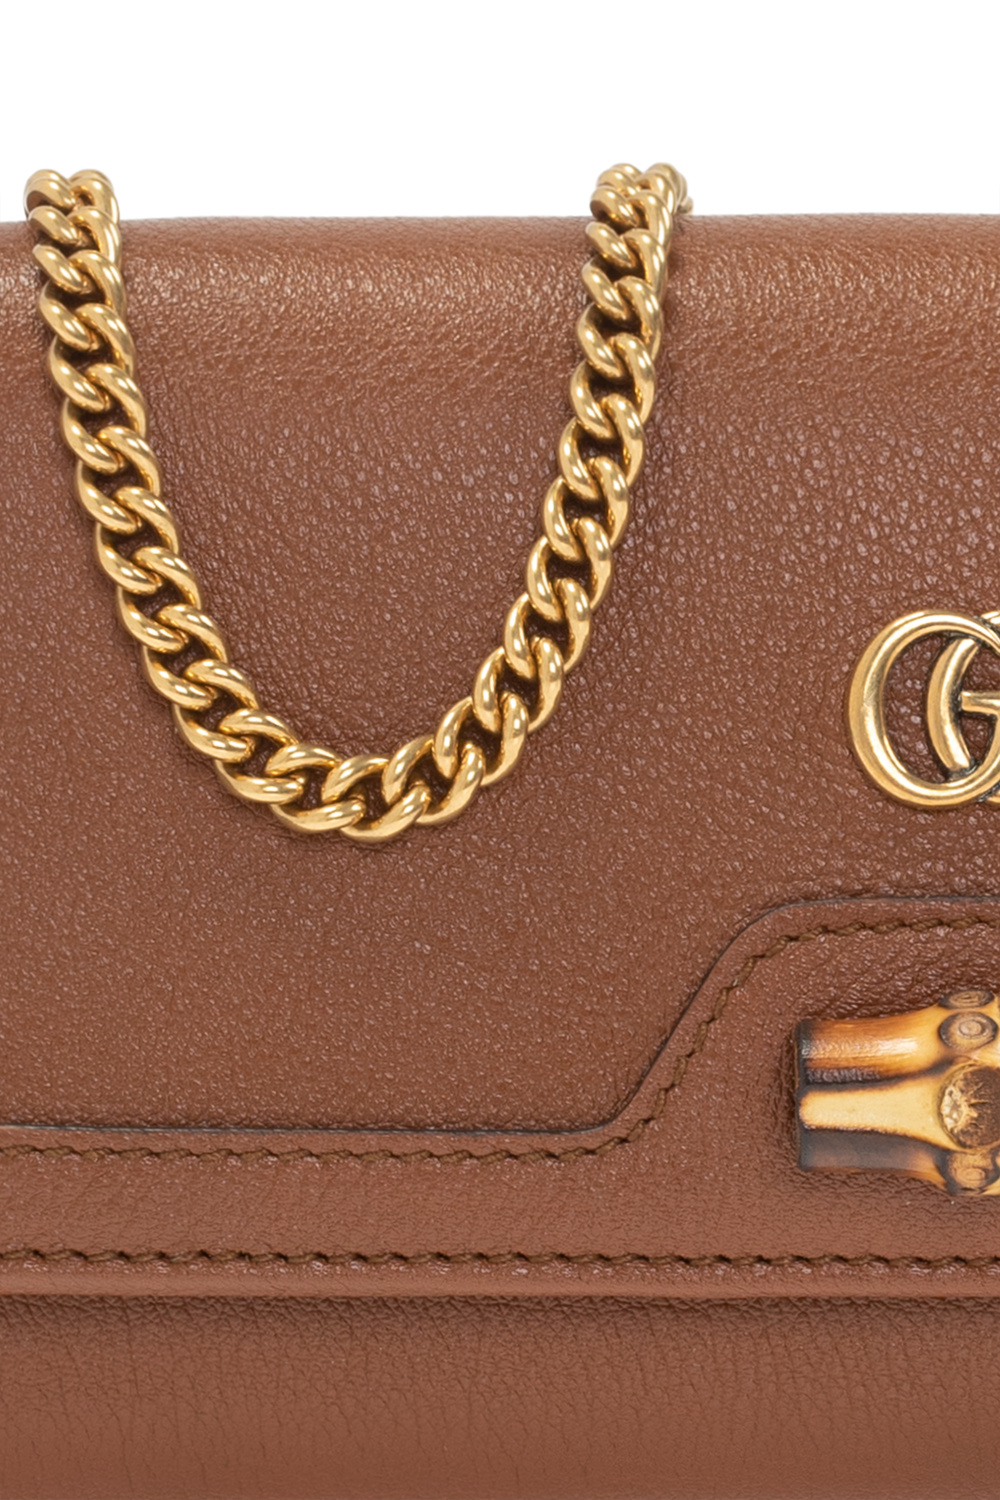 Gucci 'Diana' wallet with chain